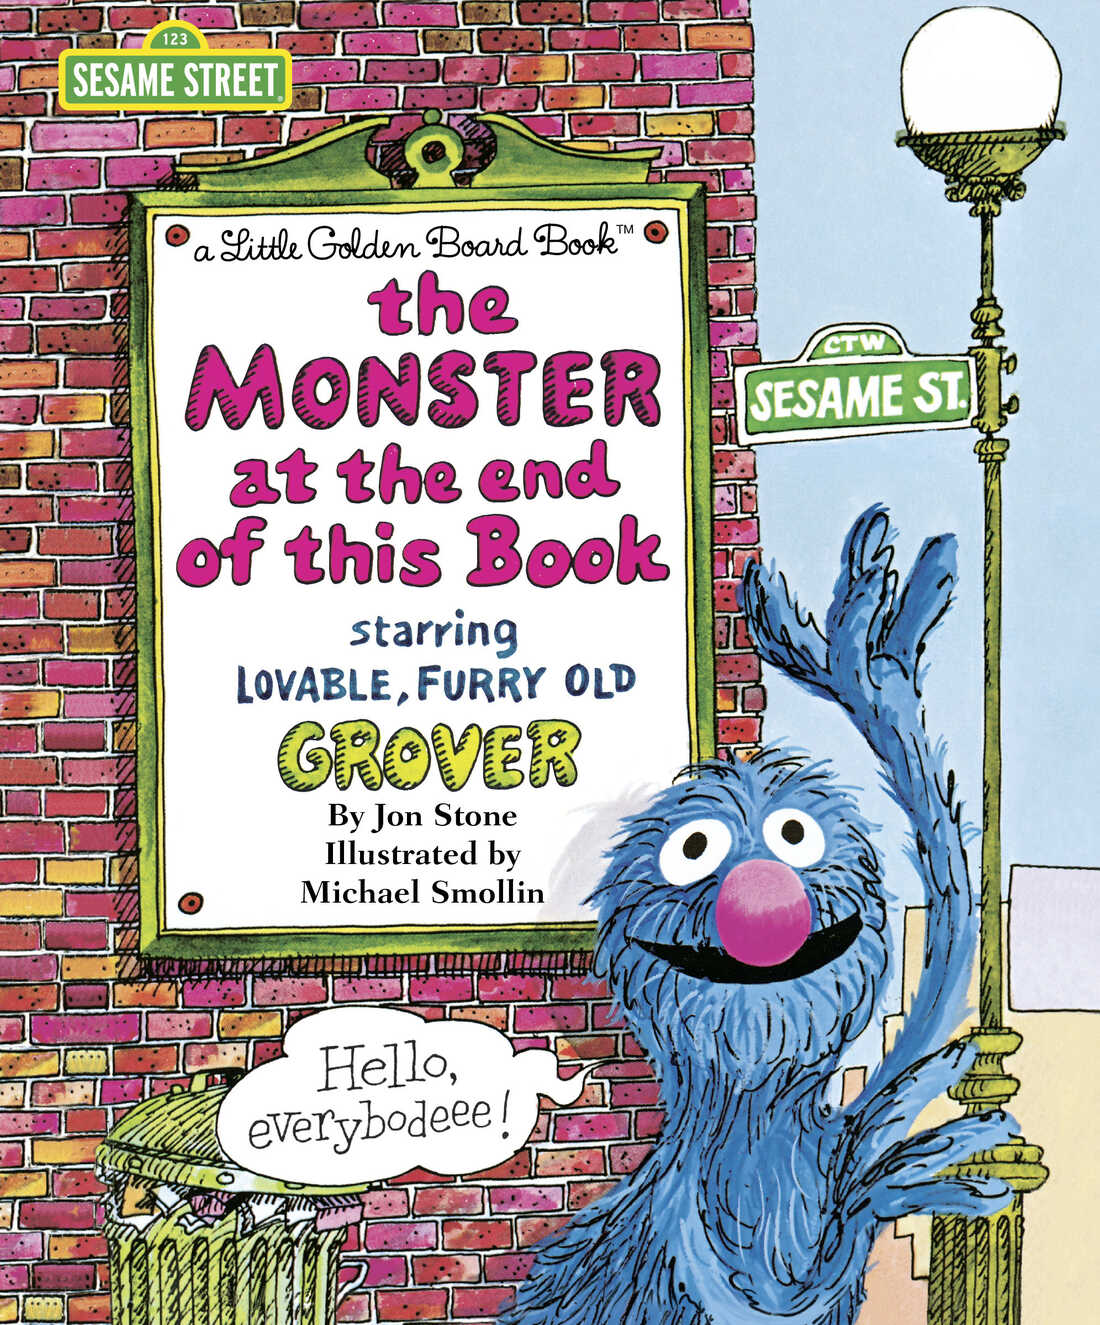 The Monster at the End of This Book by Jon Stone and Michael Smollin.